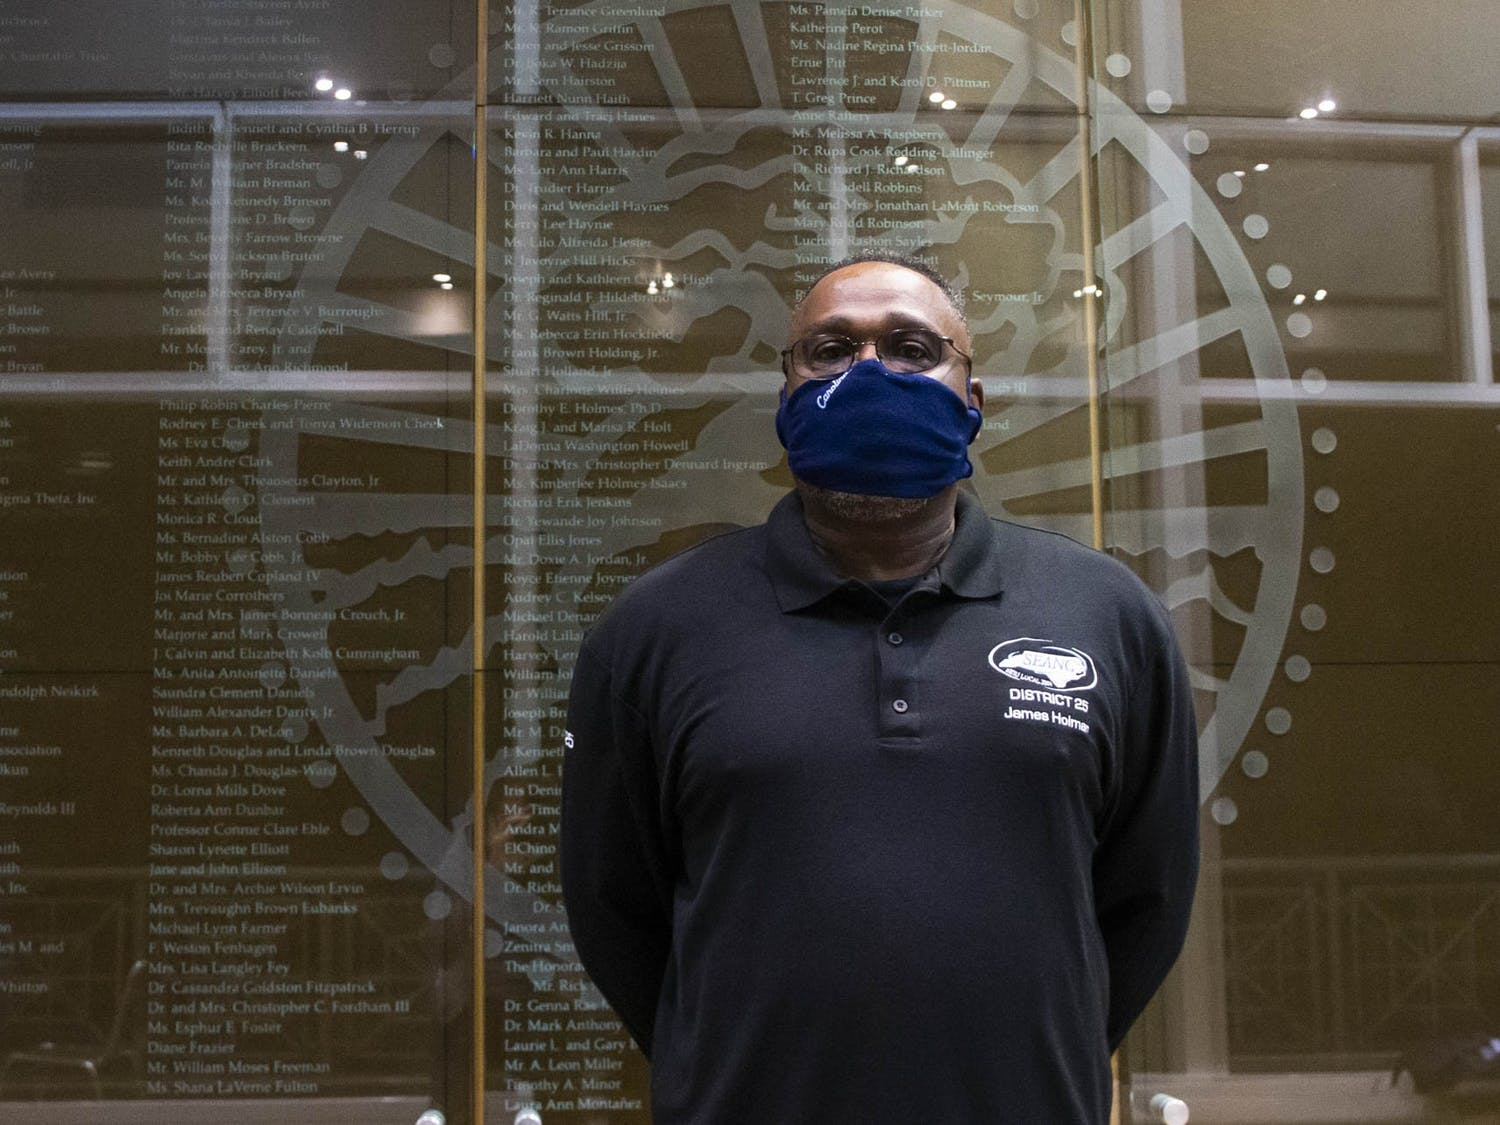 """James Holman, a crew leader for UNC housekeeping services and 15-year-long employee at the university, stands in front of a wall of honorable mentions in the Sonja Haynes Stone Center for Black Culture and History on Friday, October 16, 2020. Holman is the first recipient of the Rebecca Clark Staff Award for Moral Courage. Holman spoke about his role as a sort of liaison for his staff. """"I do a lot of advocacy work,"""" Holman said. He is the person that gets complaints heard and miscommunication straightened out, before it starts to affect people's work life and mental health. """"When the staff have issues, if it's a group issue, I will take it to the forum and then we'll take it tot the Vice Chancellors and try to get the situation resolved."""""""